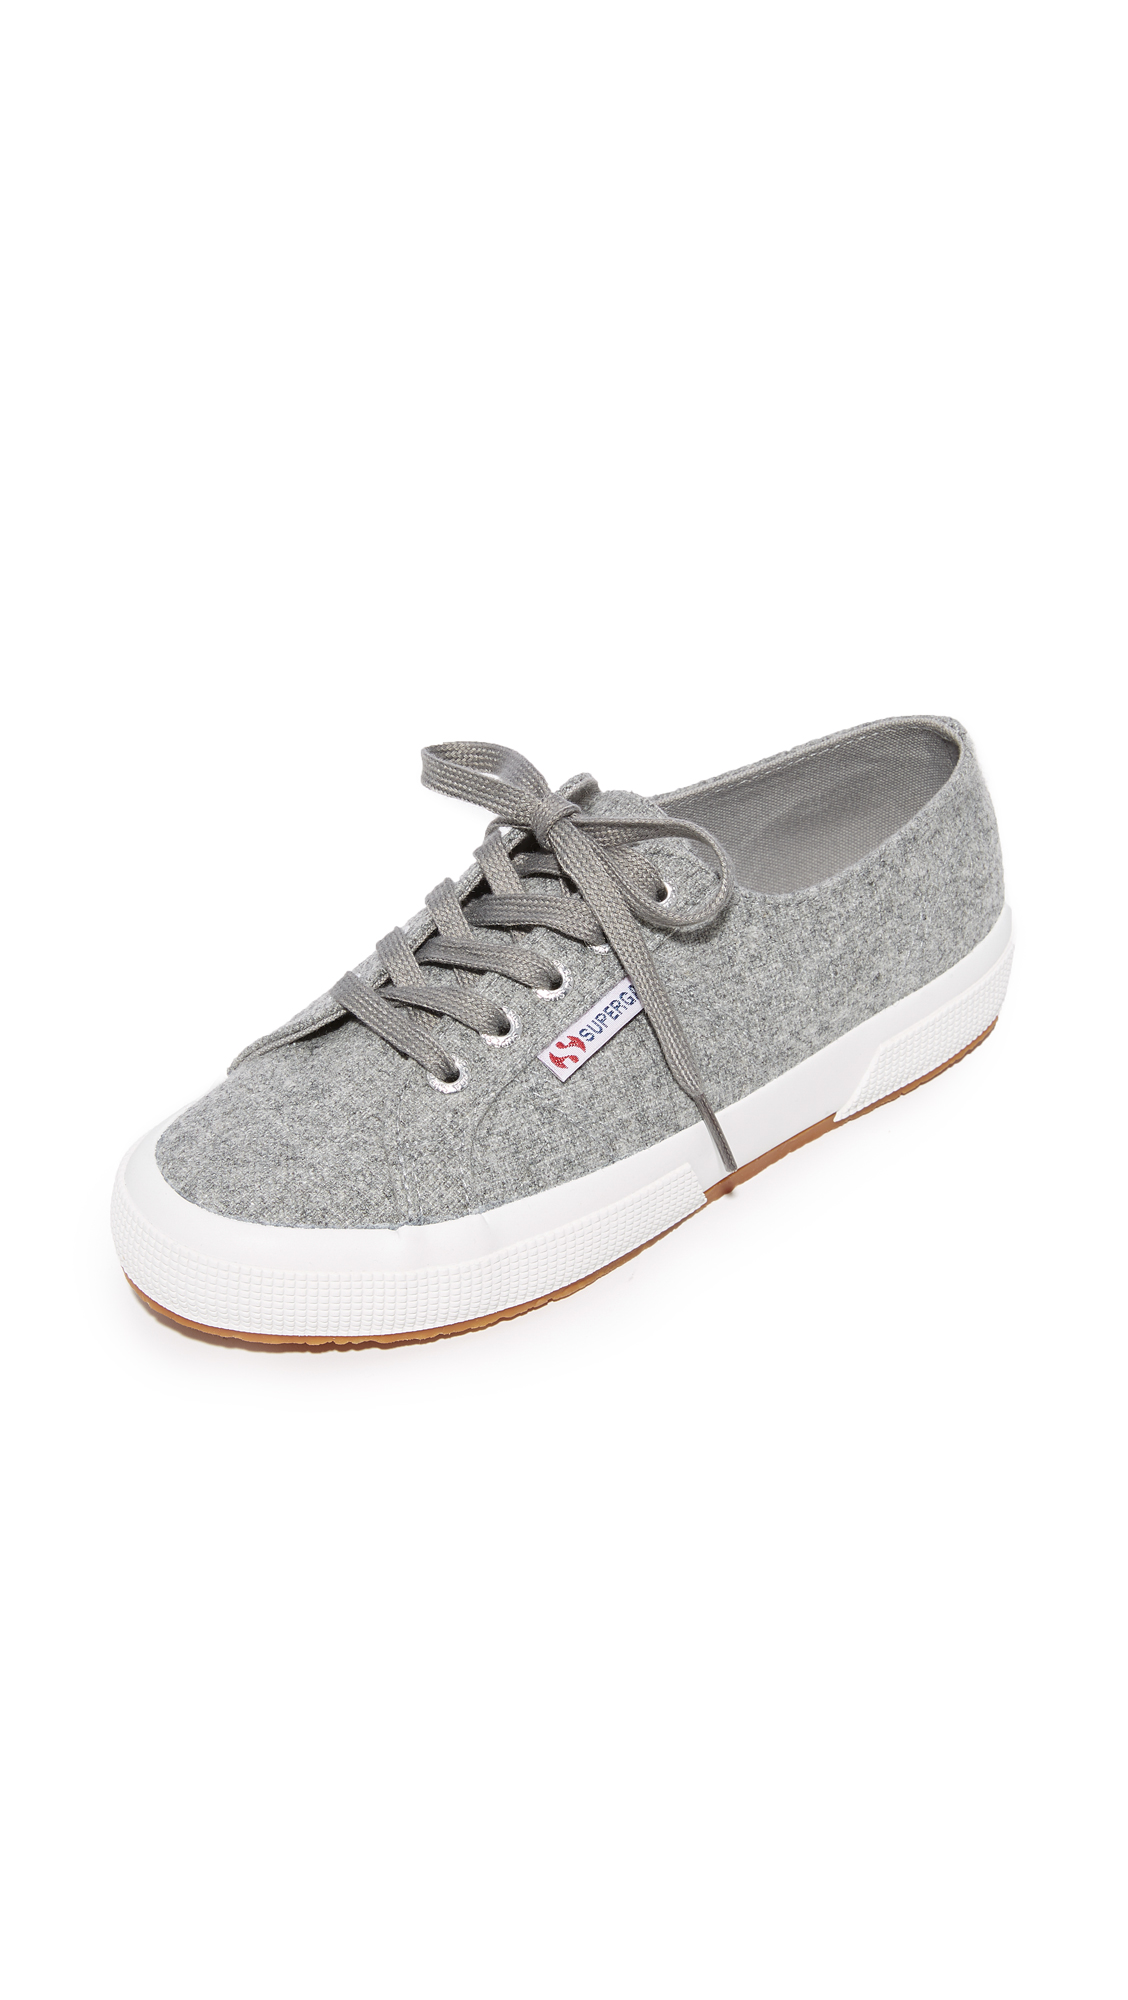 Superga 2750 Polywool Classic Sneakers - Light Grey